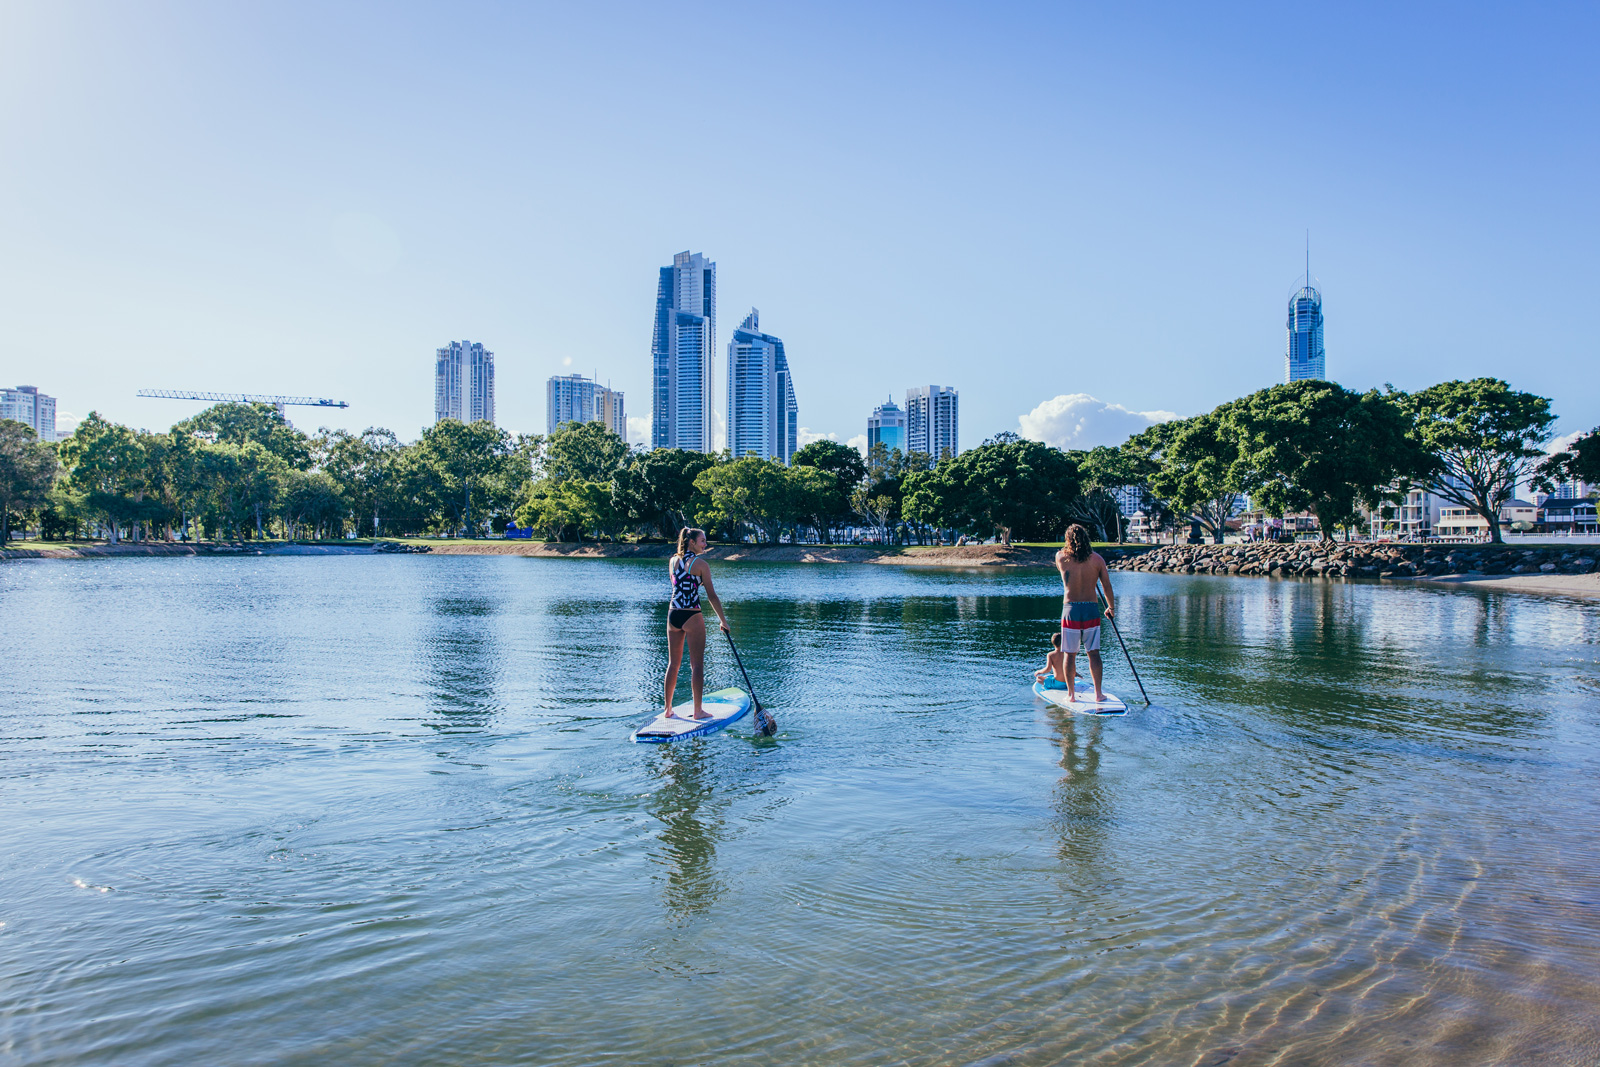 two people paddle-boarding on the water with the Gold Coast skyline in the background